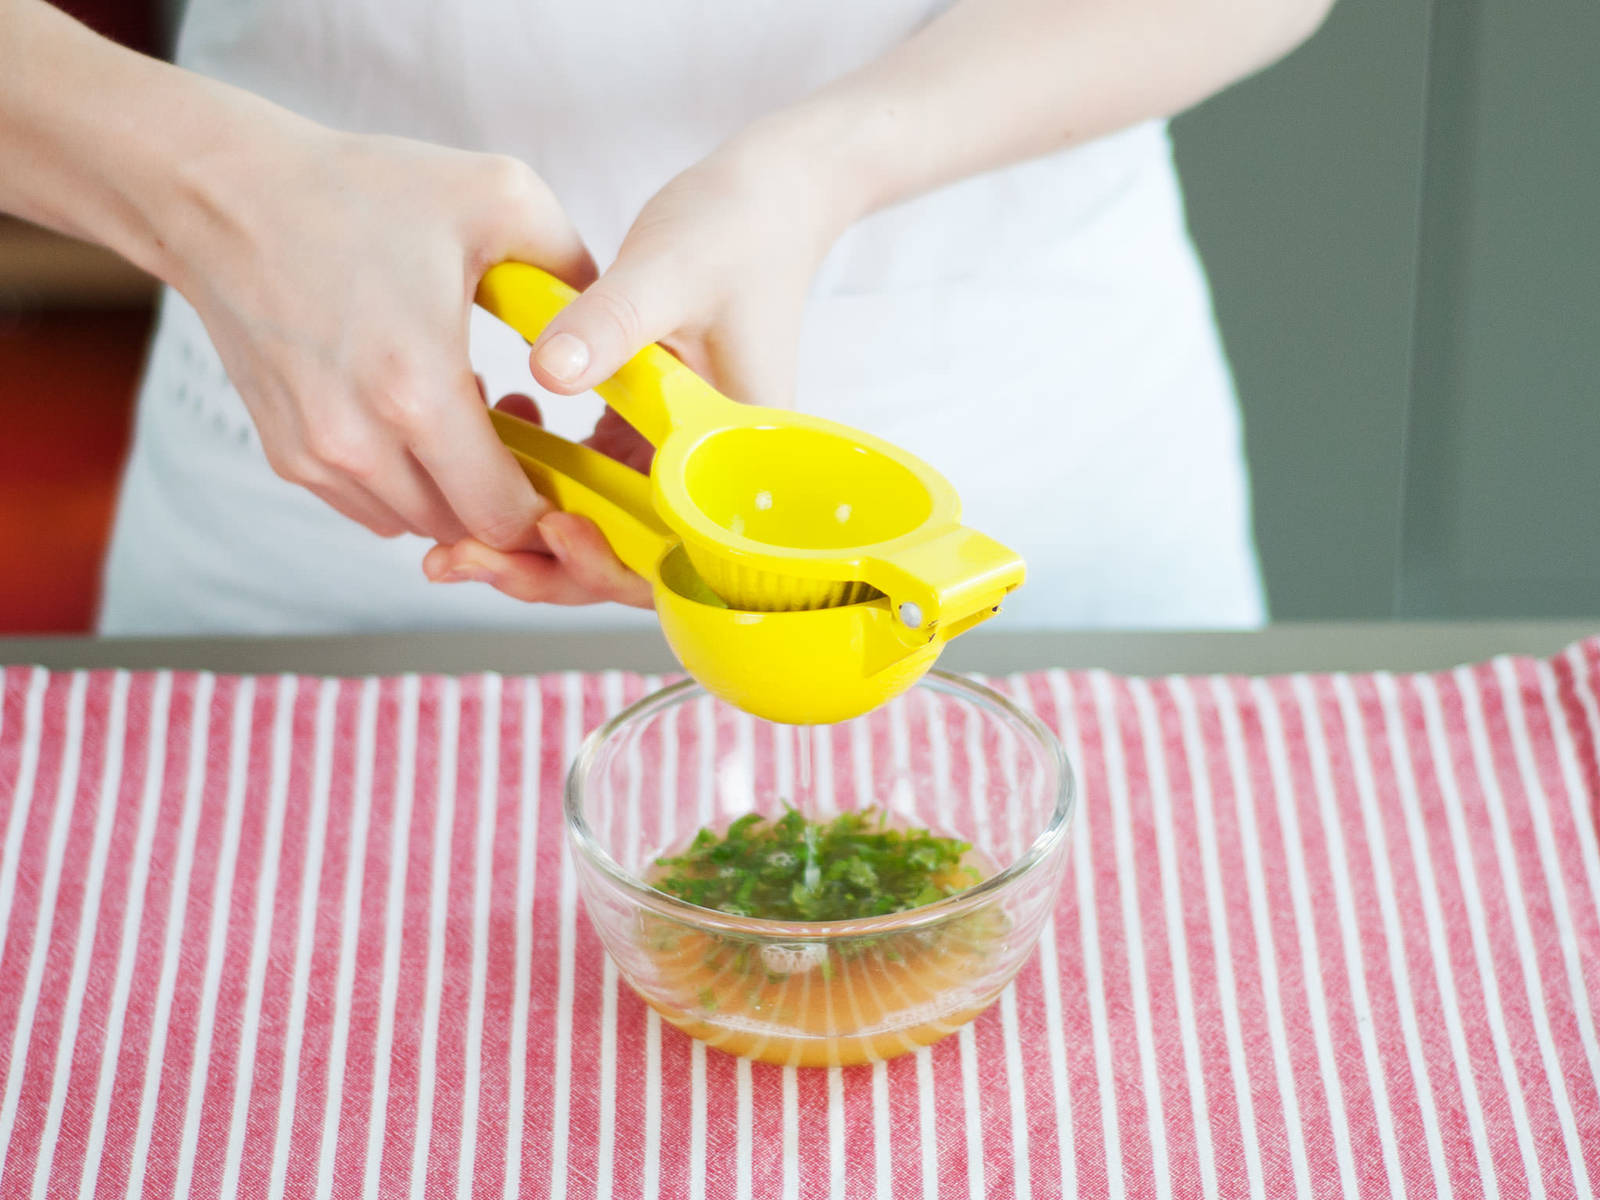 In a small bowl, whisk together grapefruit juice, orange juice, lime juice, lime zest, olive oil, honey, and chopped mint.